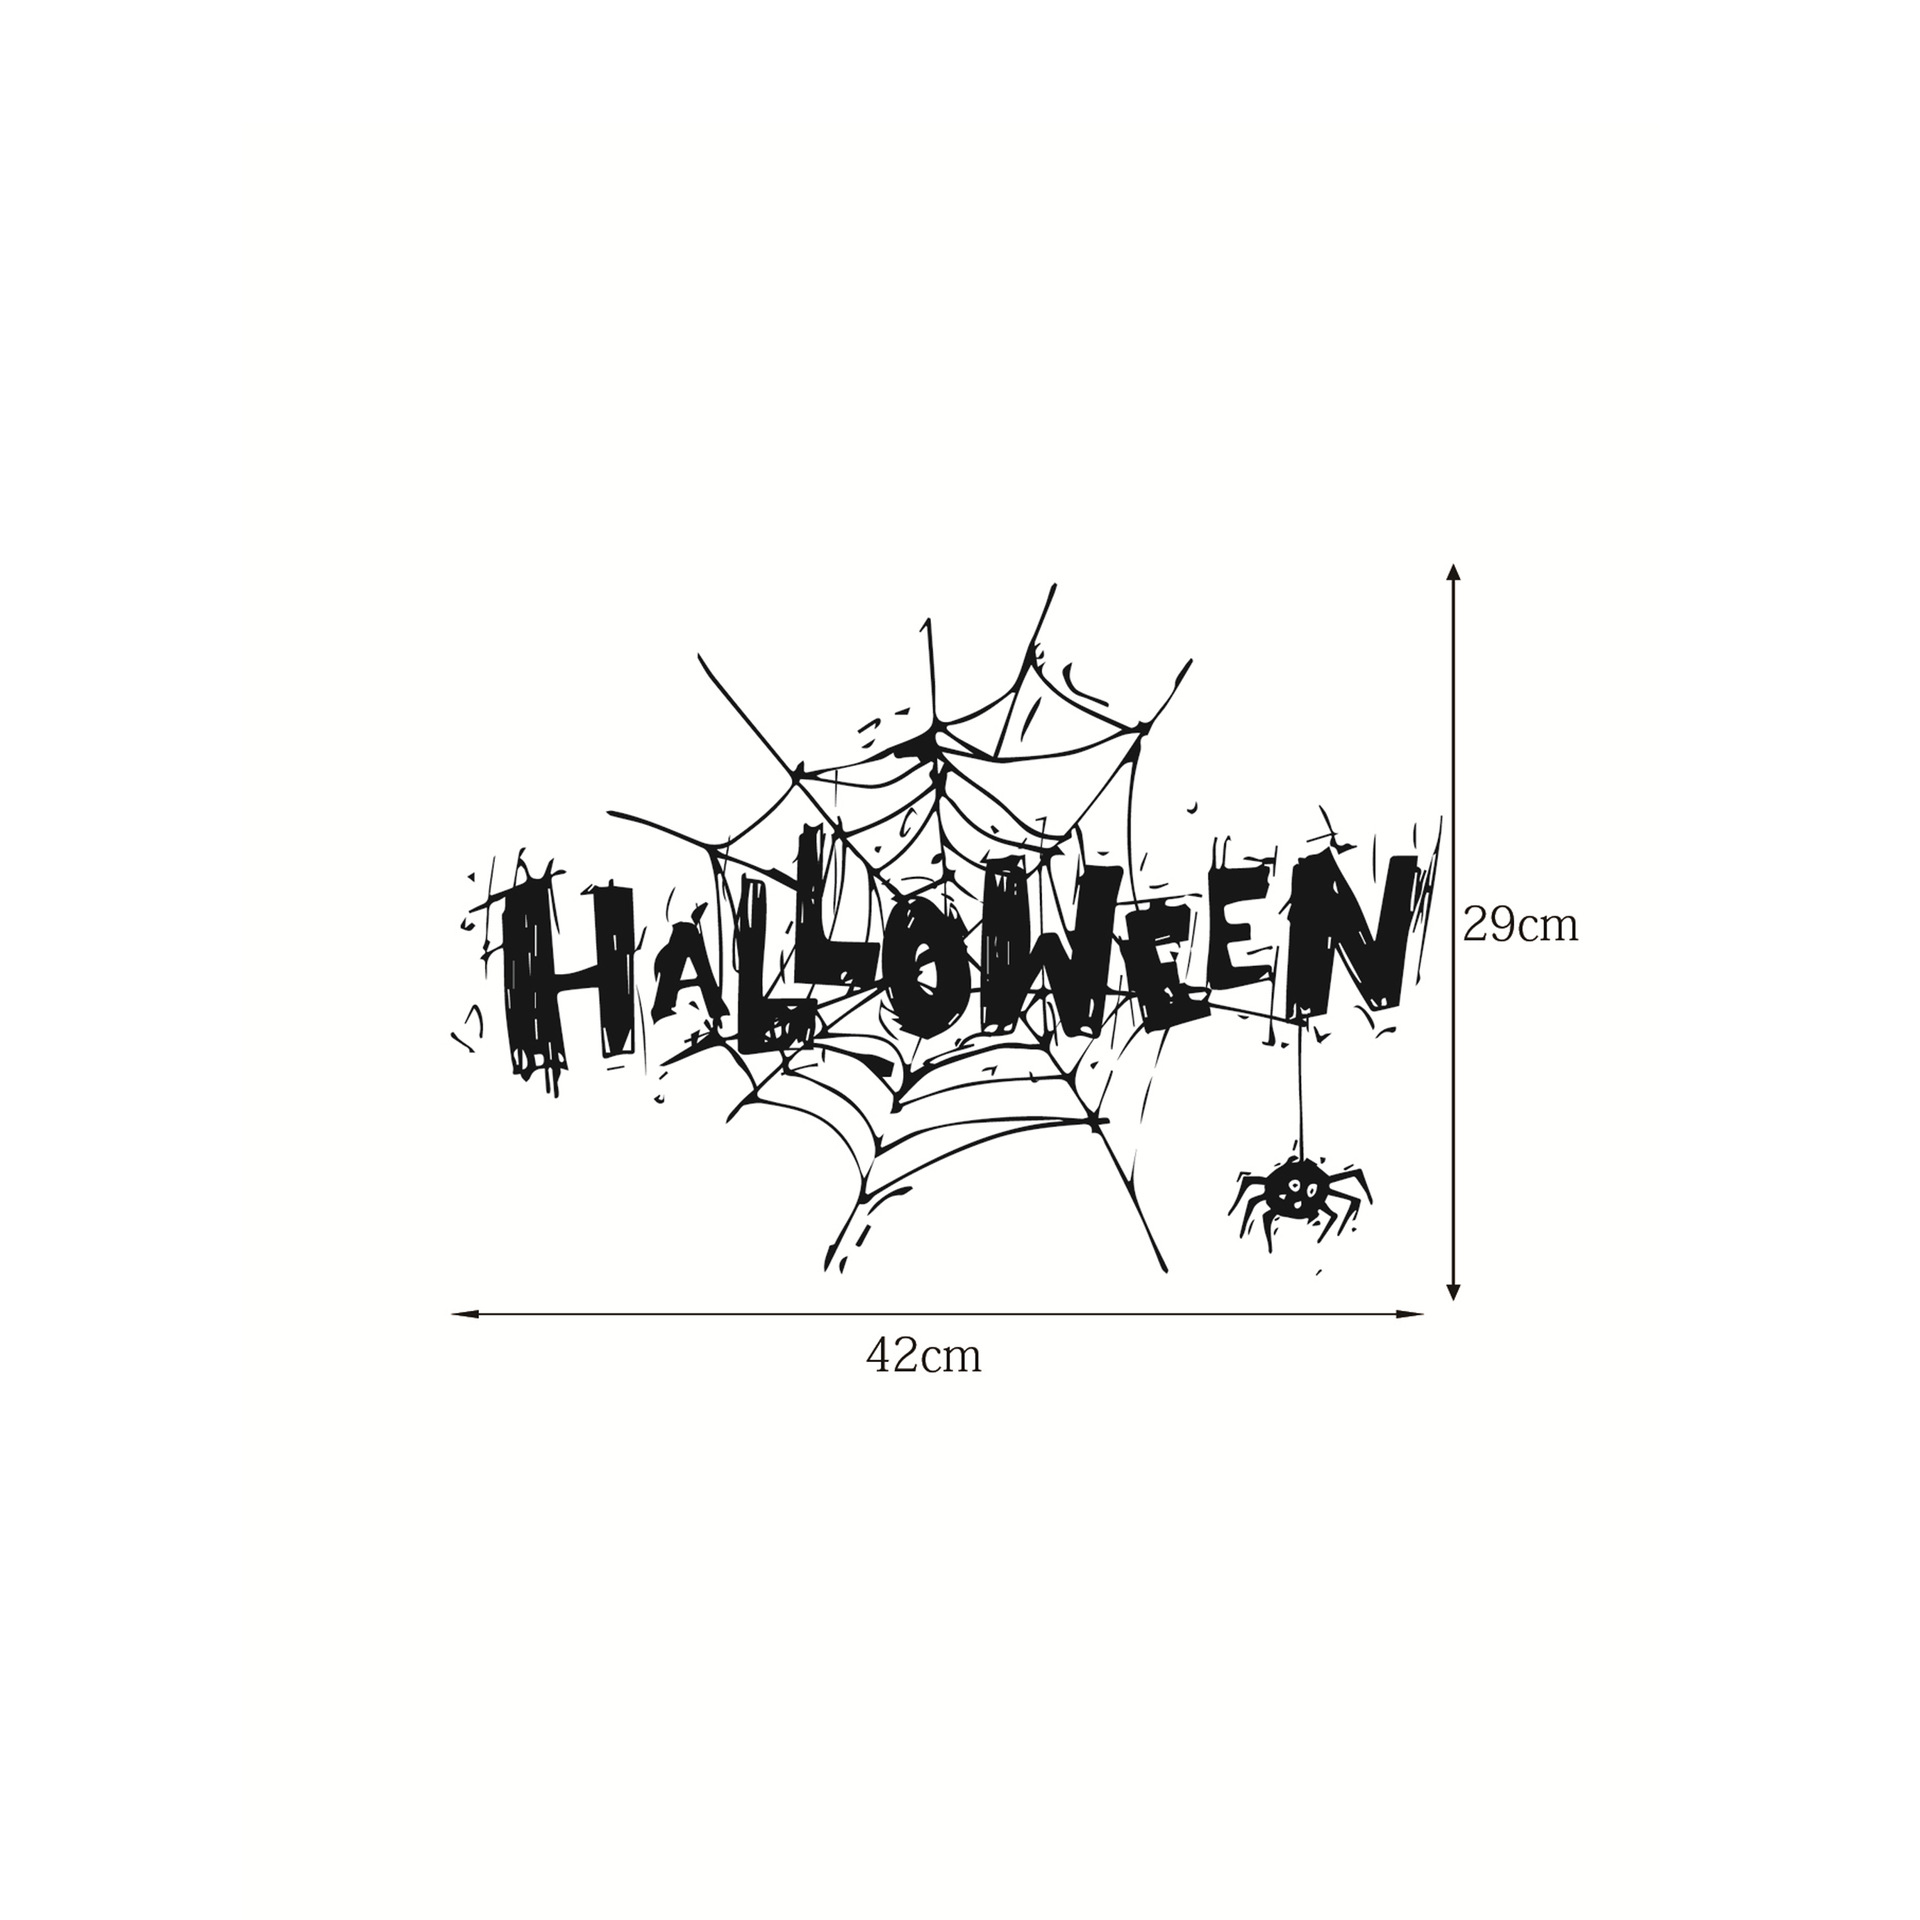 Happy Halloween Wall Sticker Room Decorations Mural Art Decal Sticker Murals Room Decal Wallpaper